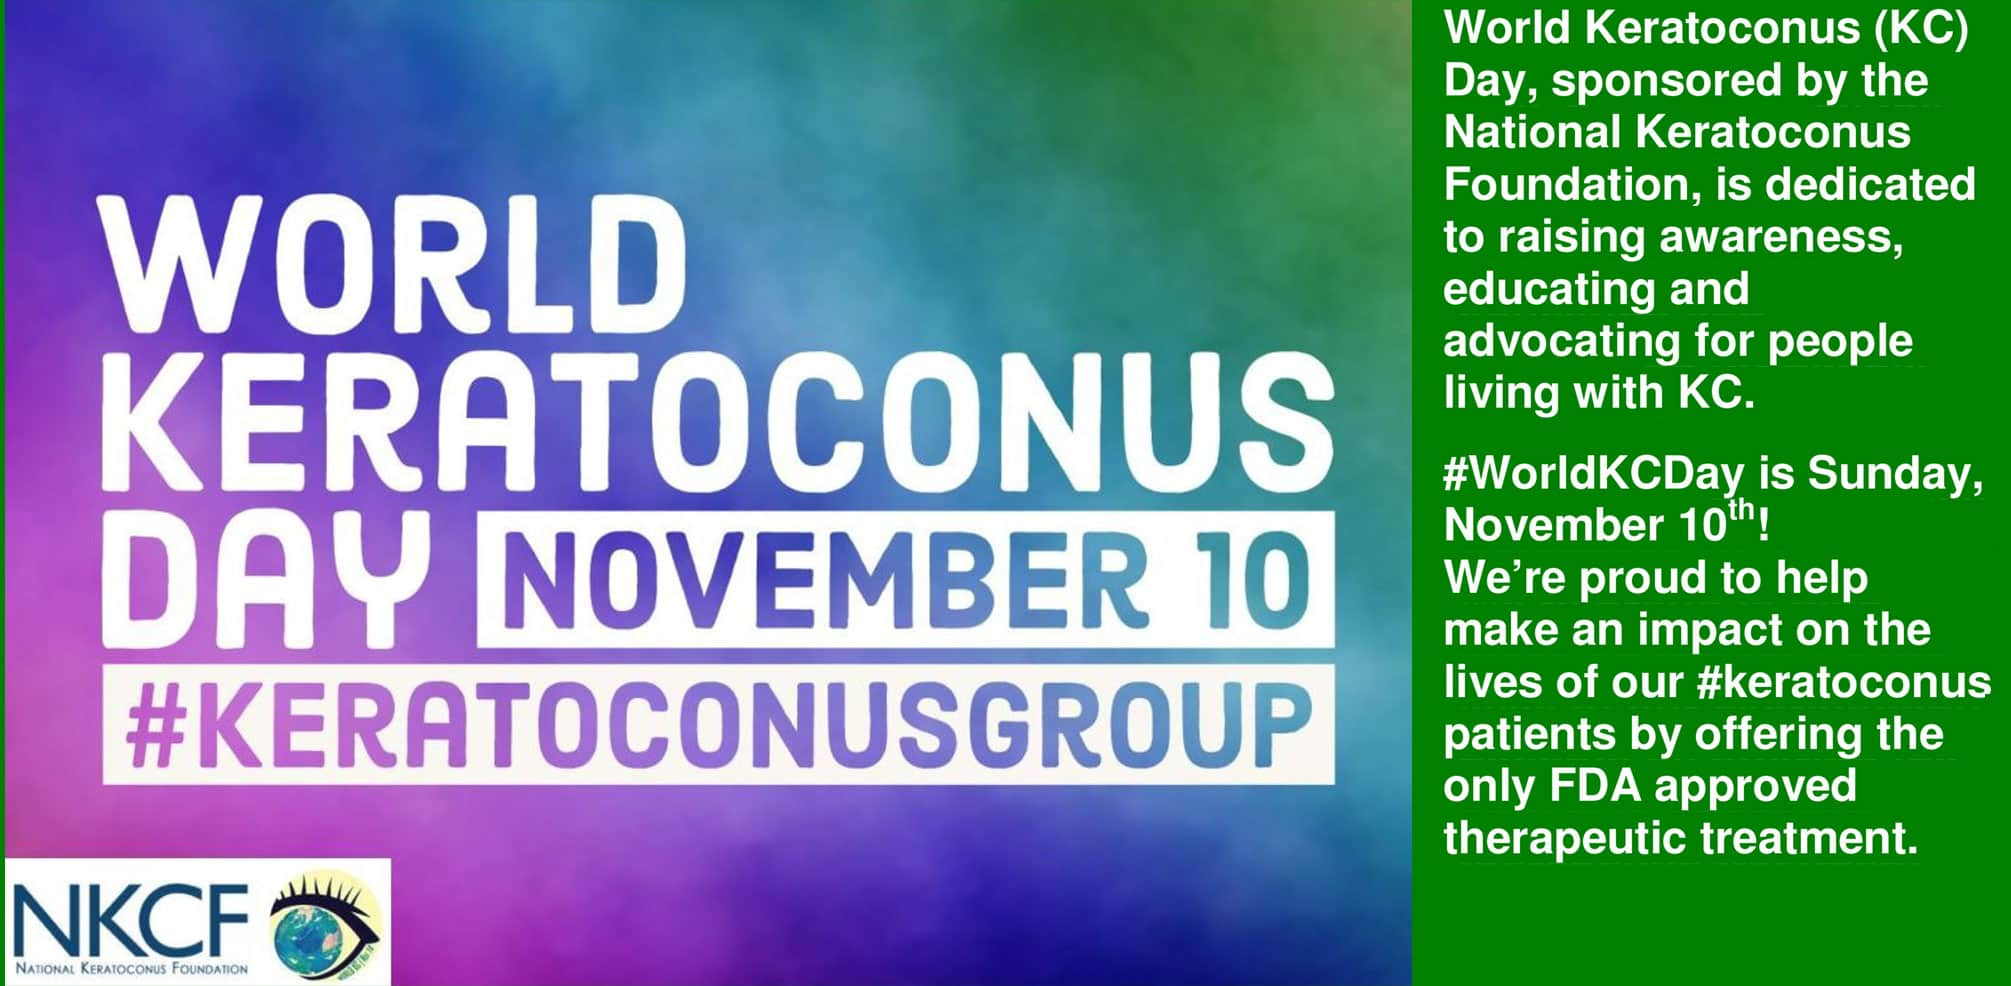 World Keratoconus Day